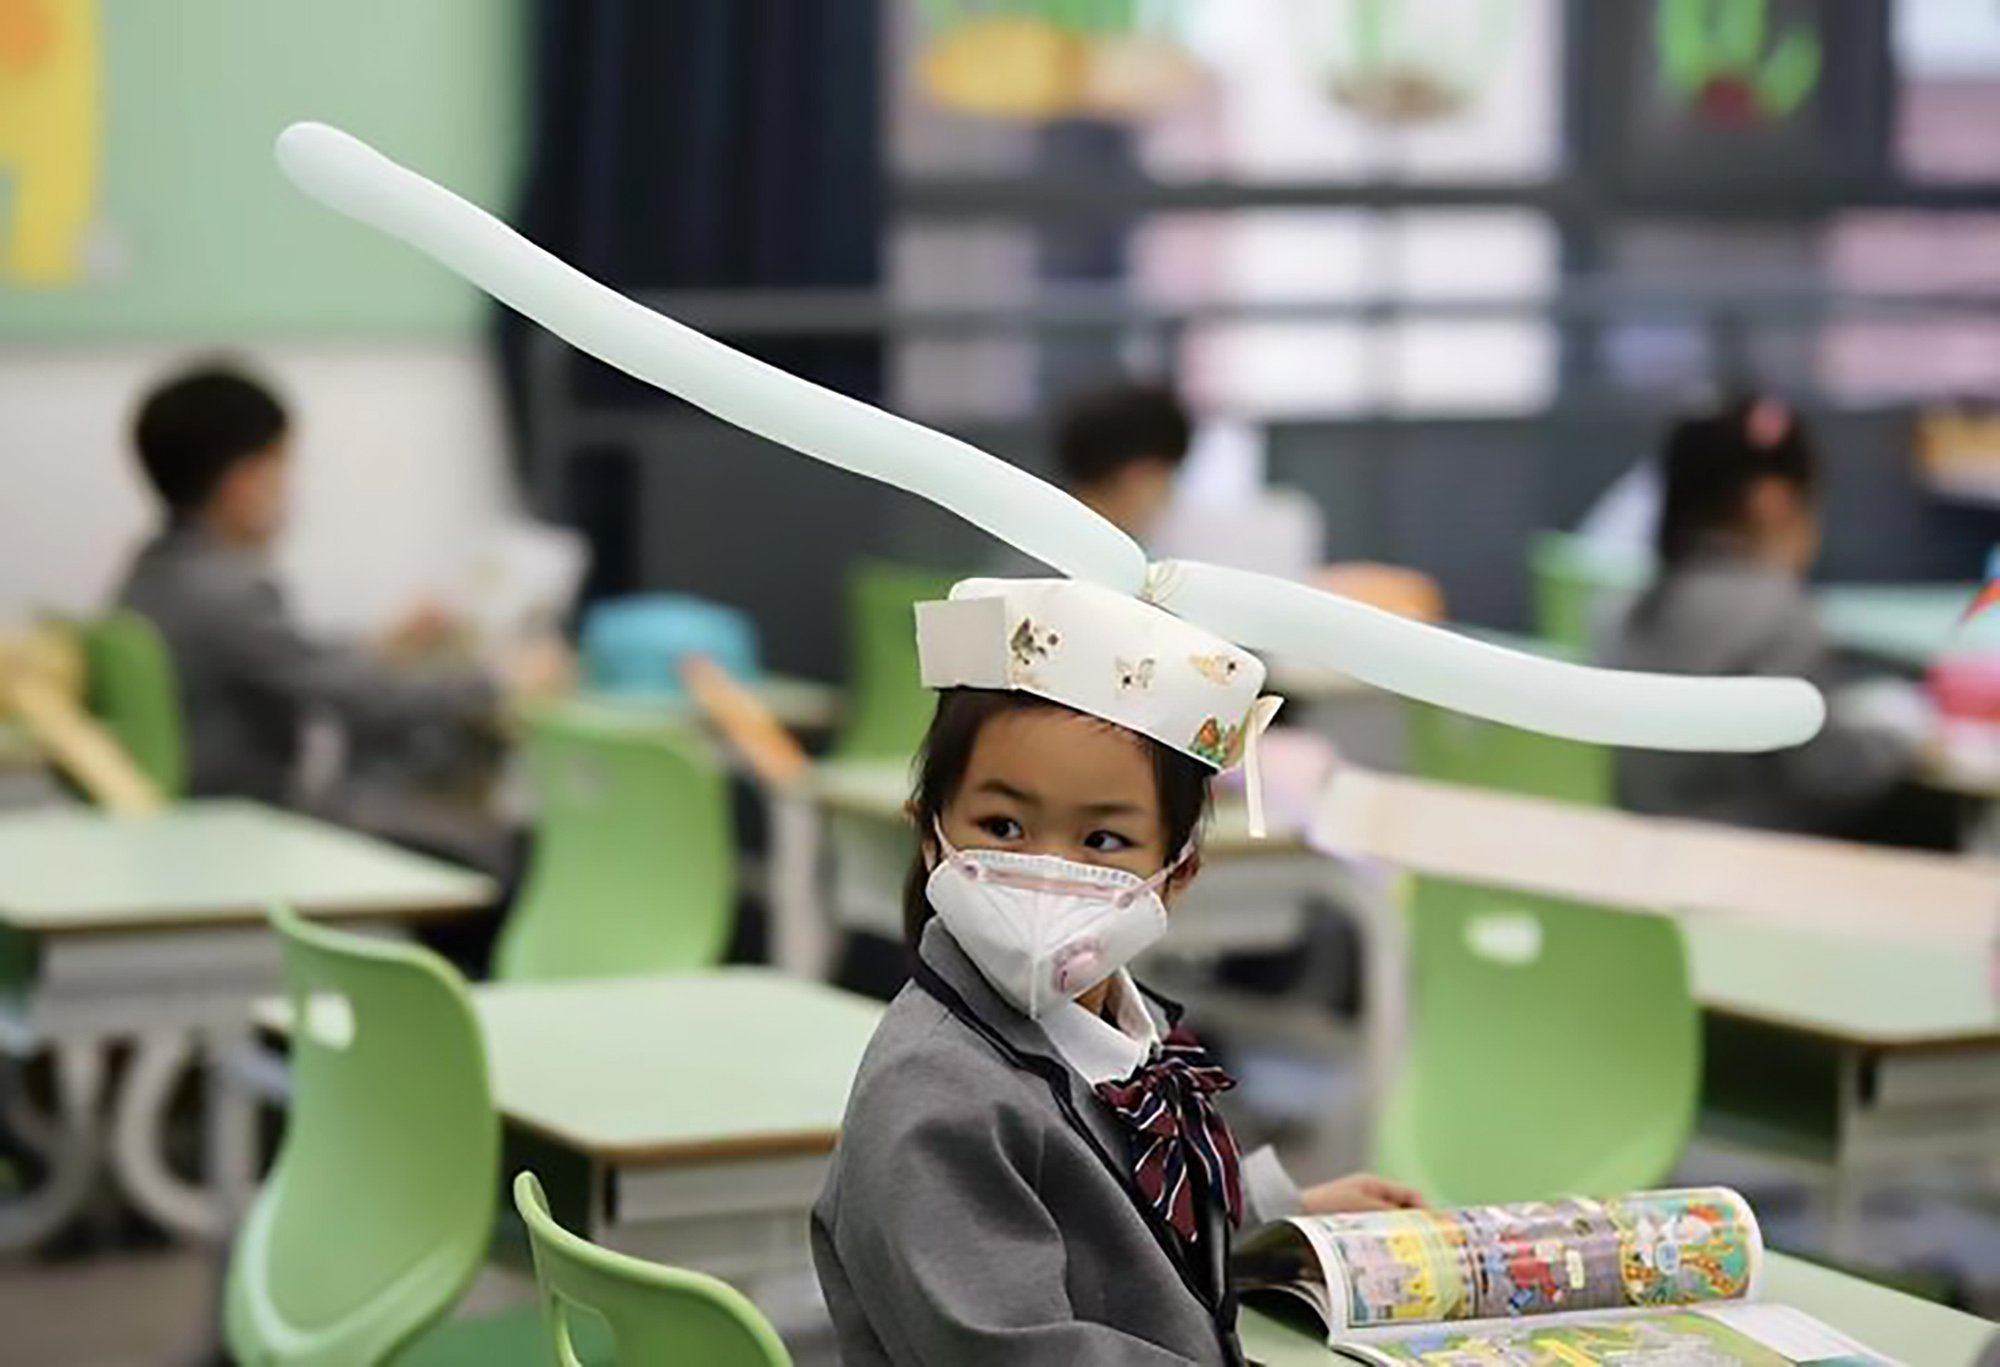 Kids in China Return To School With Home-made Social Distancing Hats